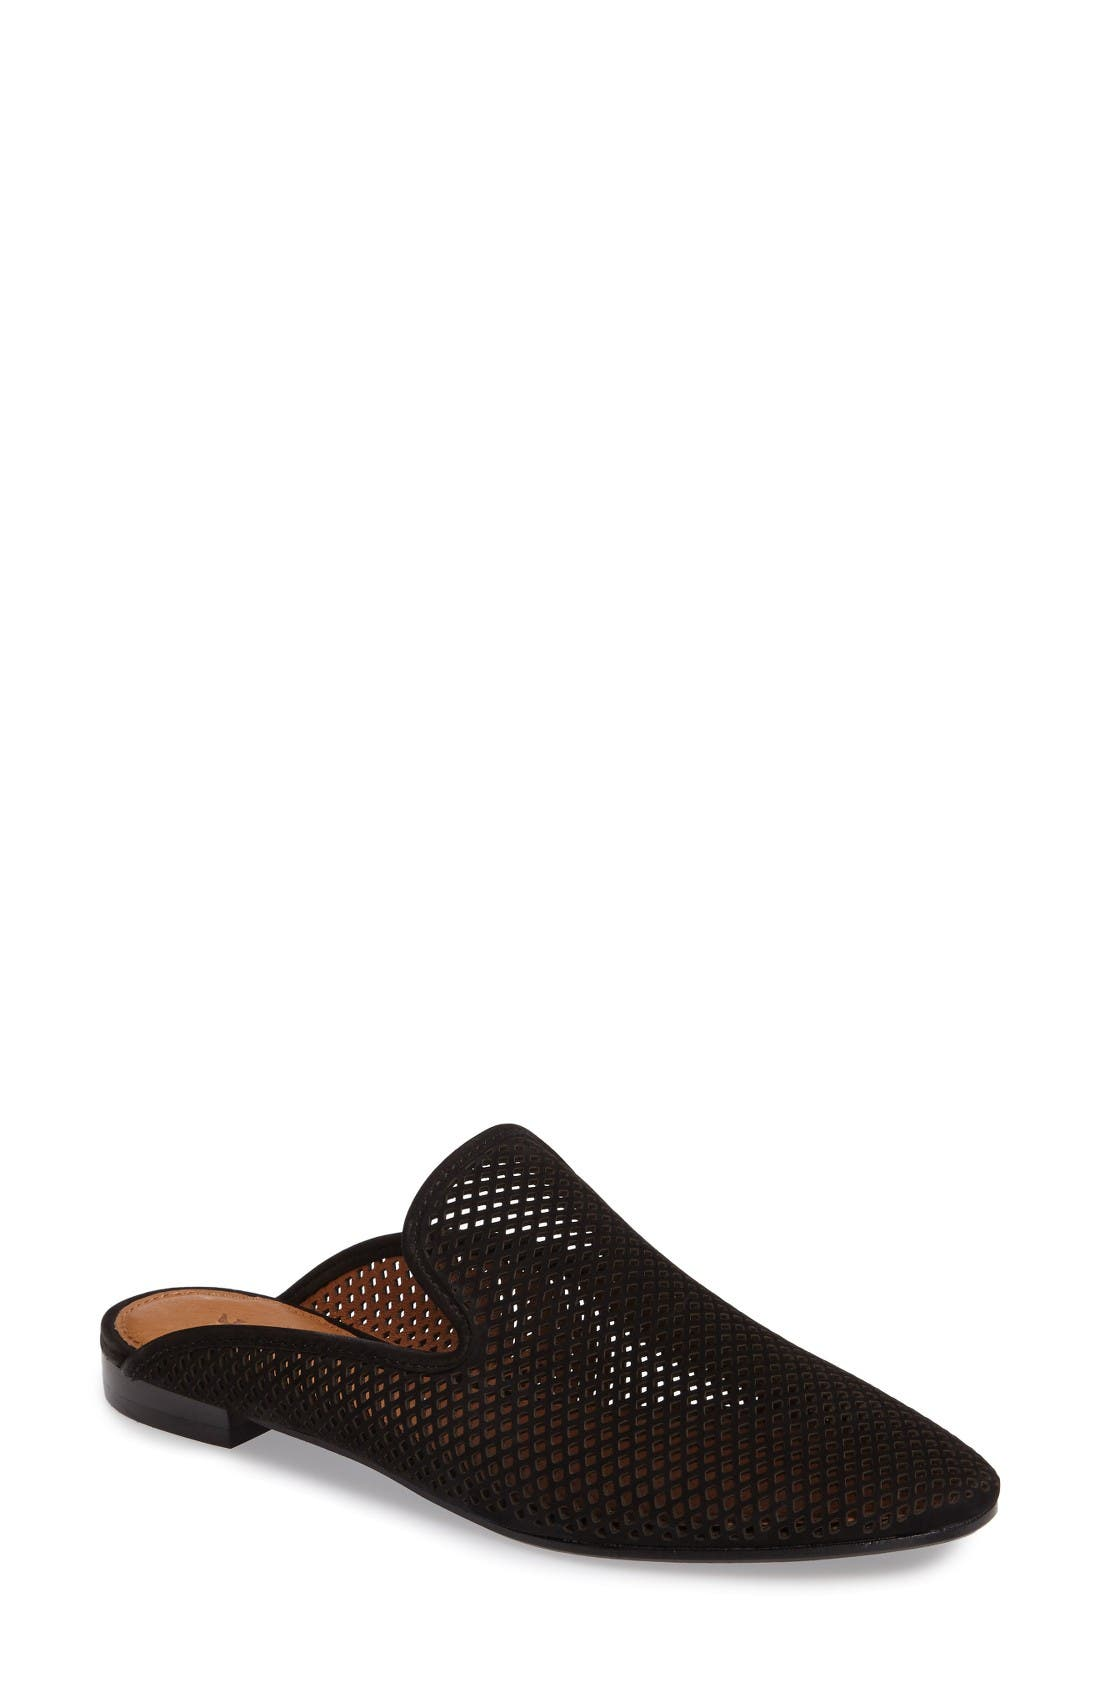 Alternate Image 1 Selected - Frye Gwen Perforated Mule (Women)